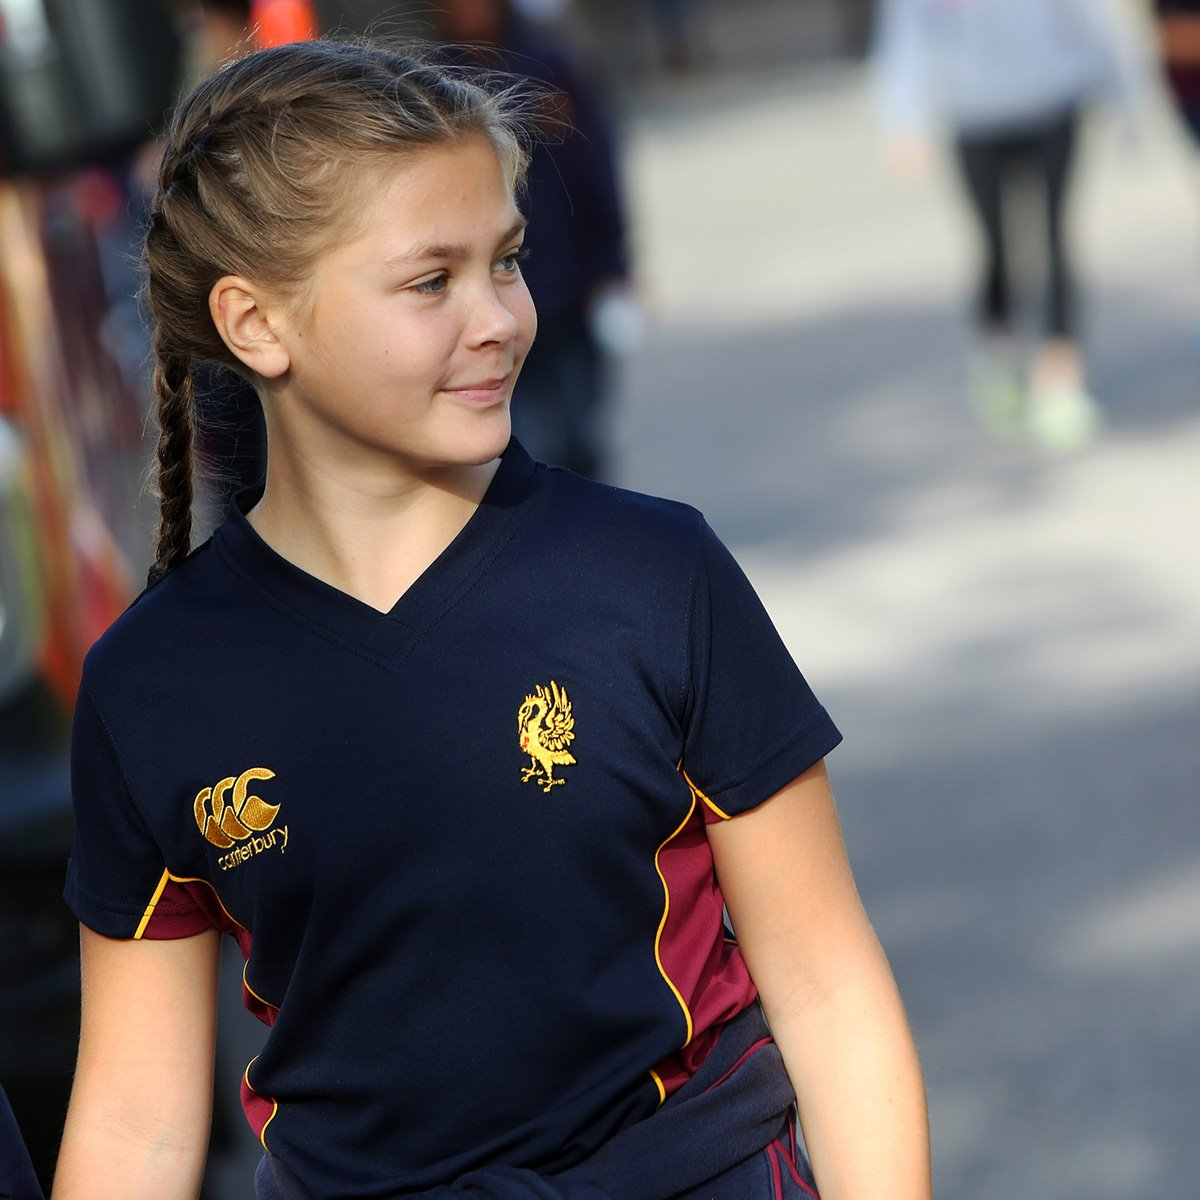 Brighton-College-sport-(junior-girl).jpg